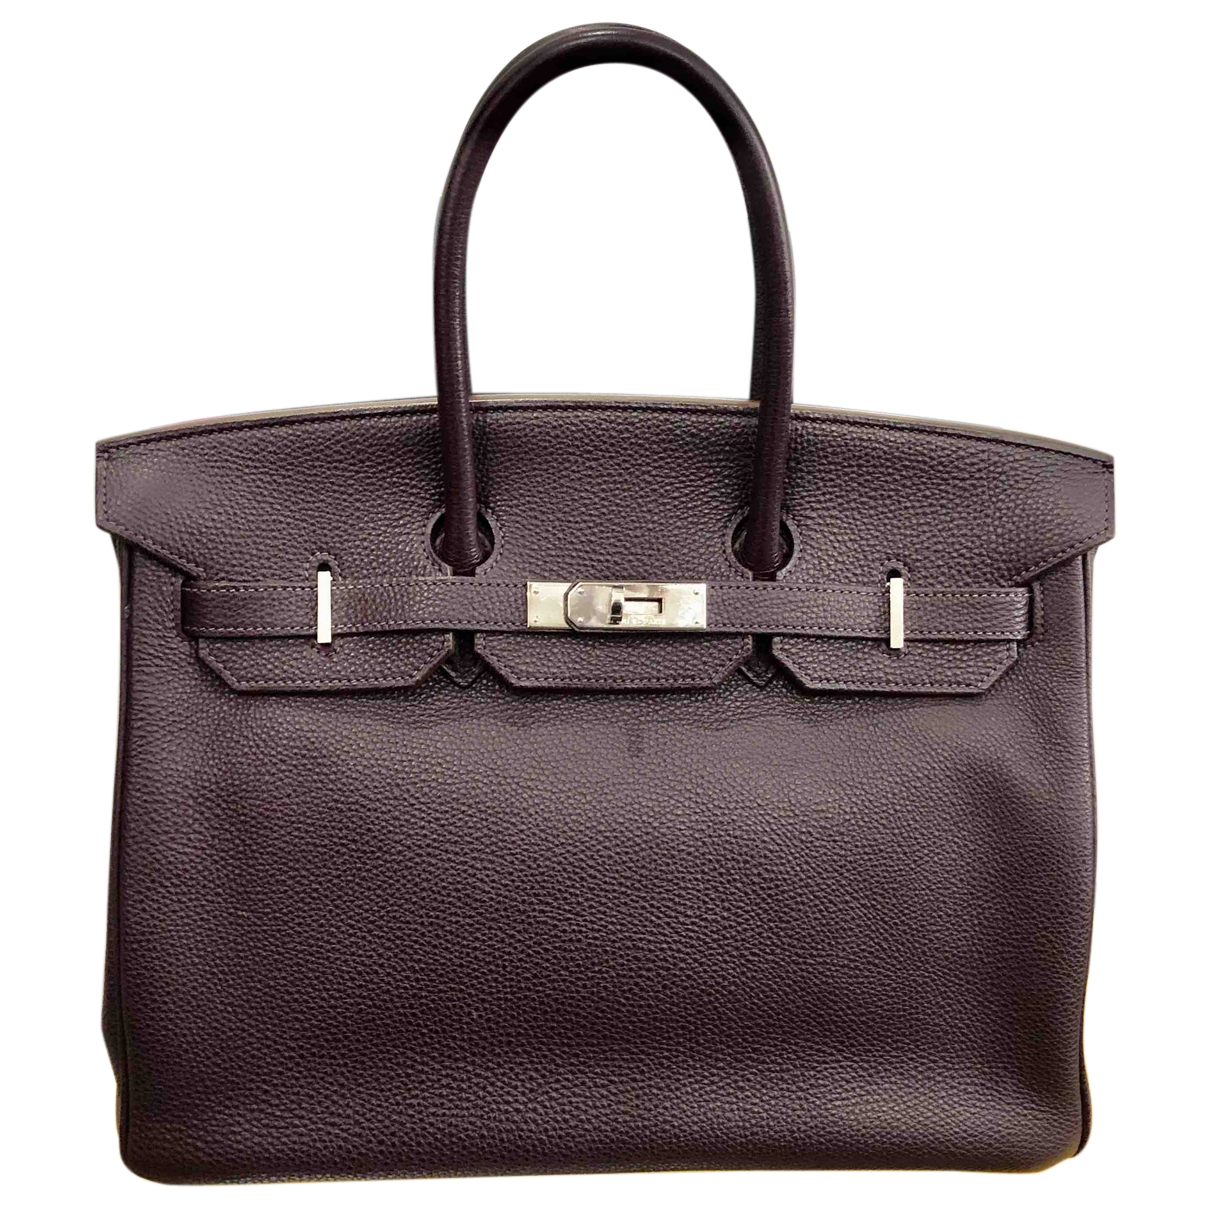 Hermès Birkin 35 Purple Leather handbag for Women N